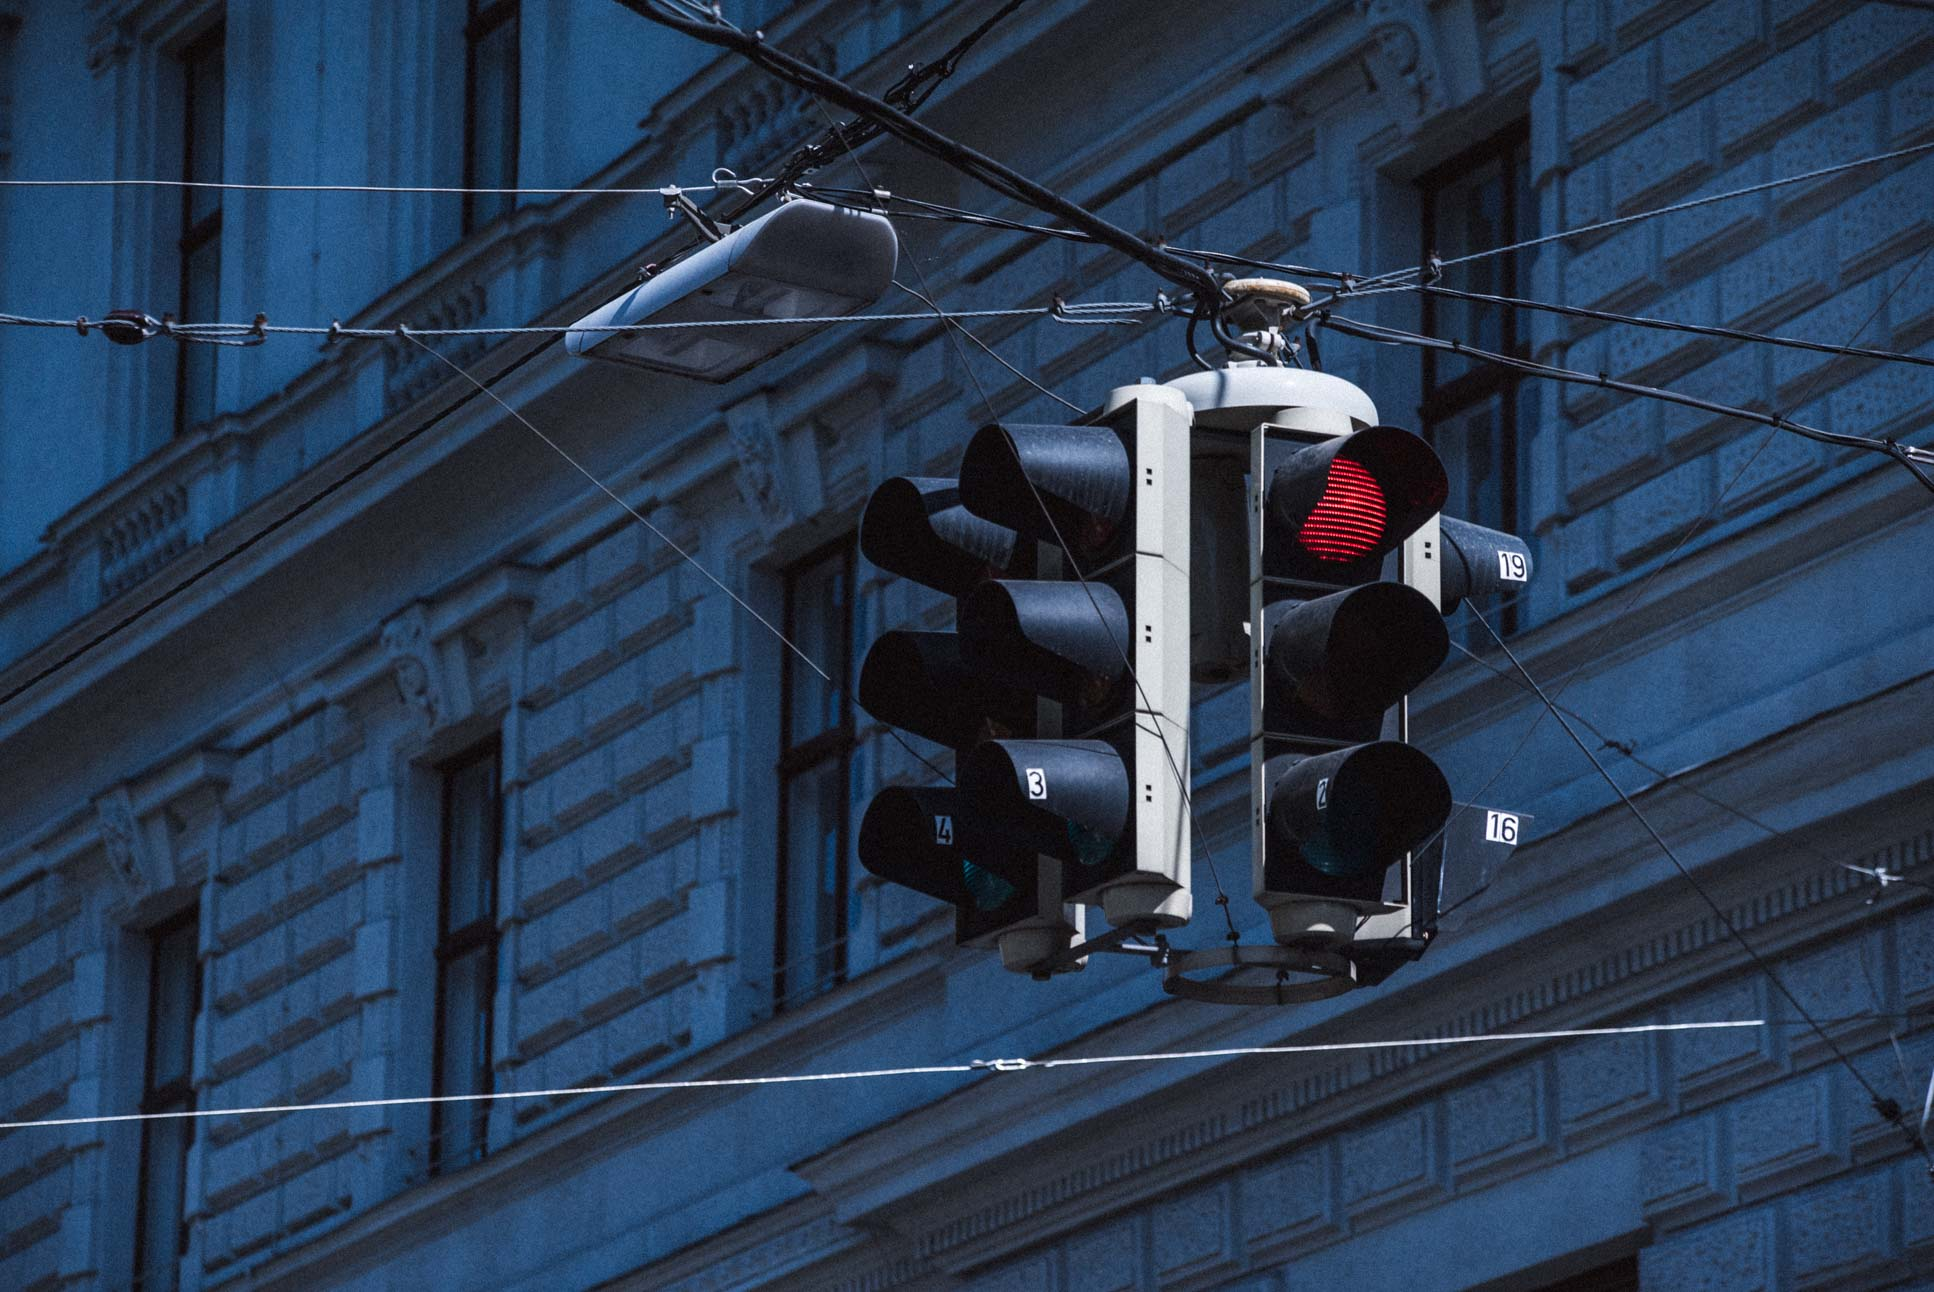 Vienna traffic lights